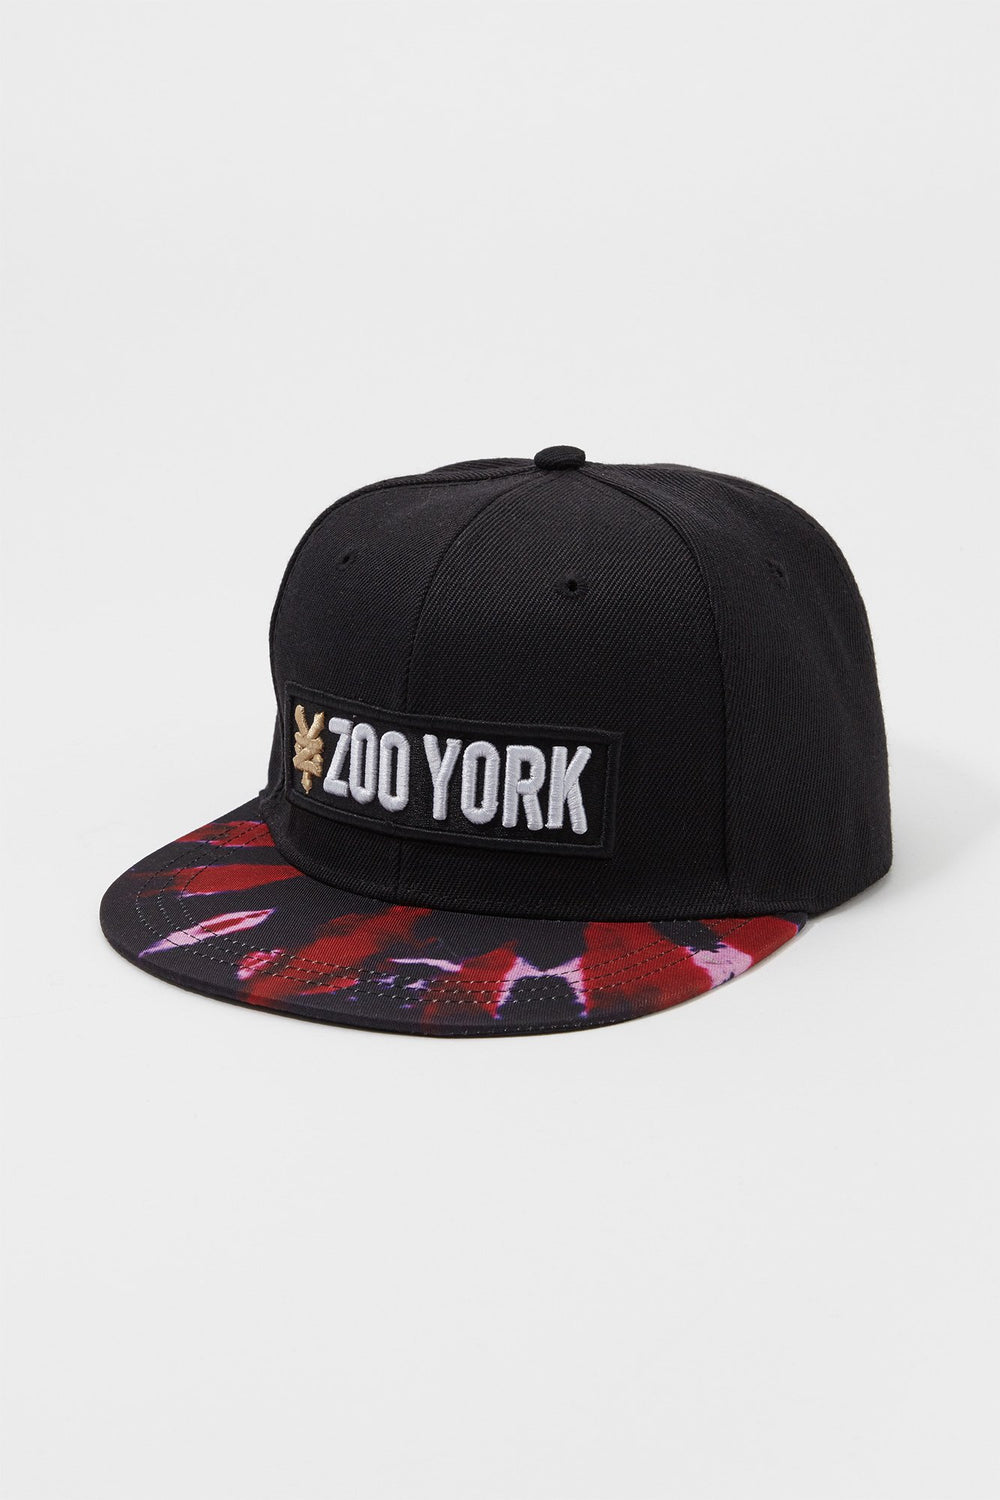 Zoo York Mens Tie-Dye Brim Snapback Hat Burgundy